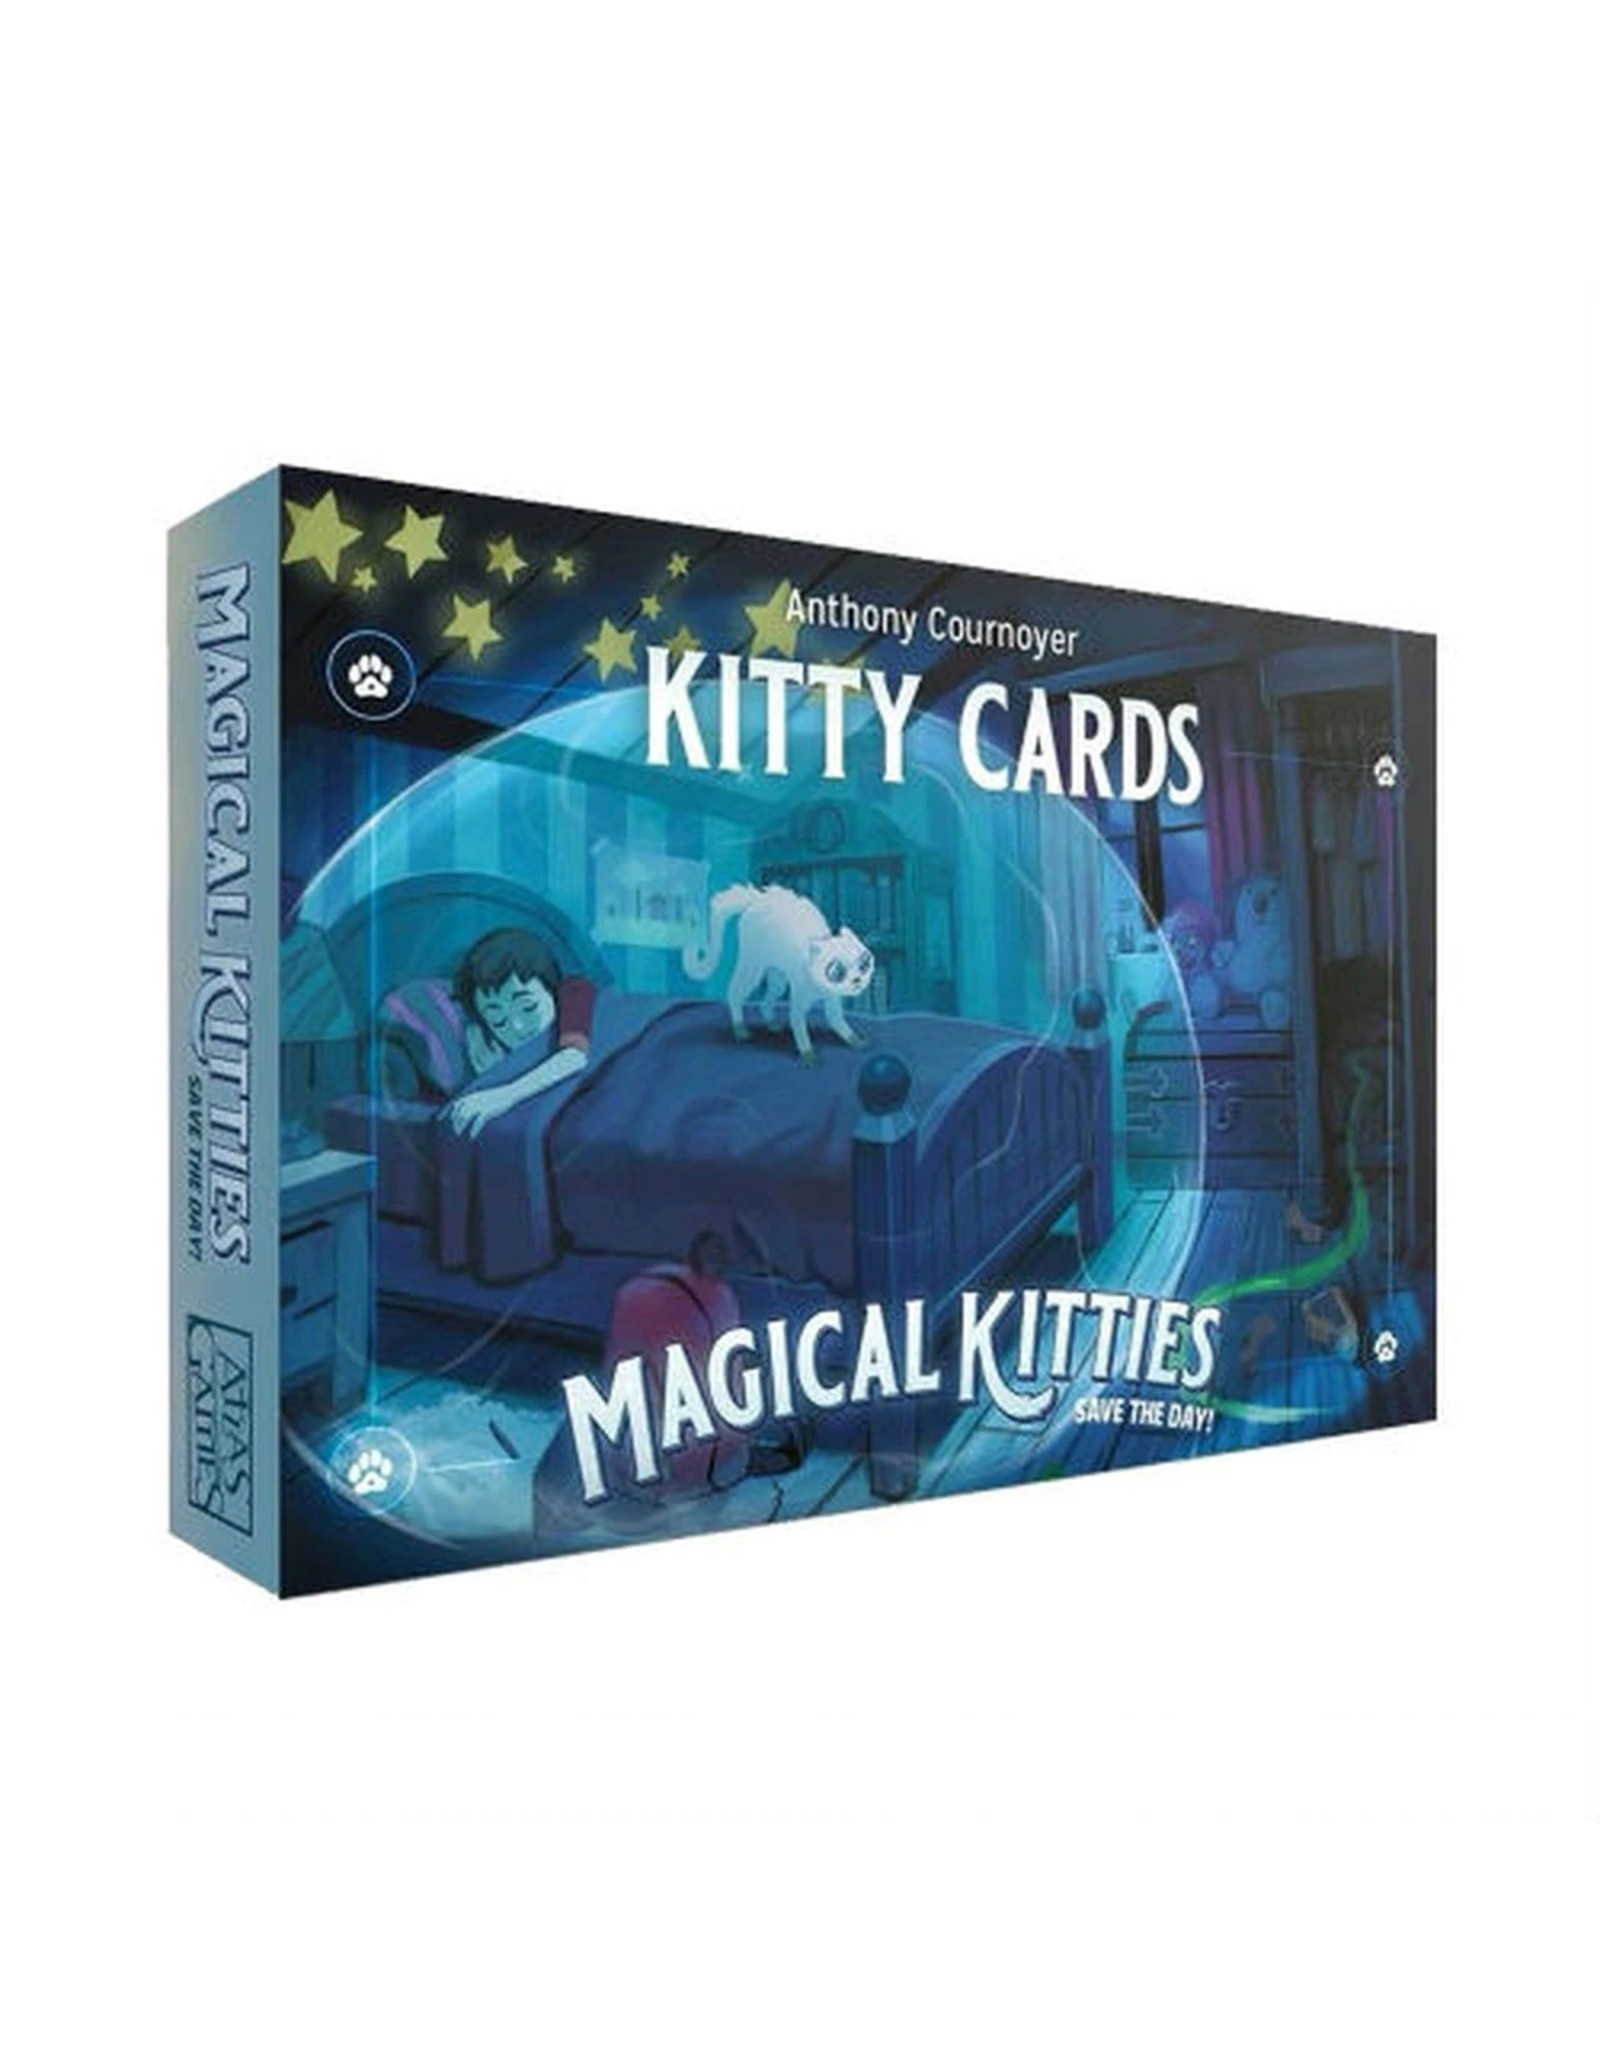 Atlas Games Magical Kitties Save the Day! Kitty Cards